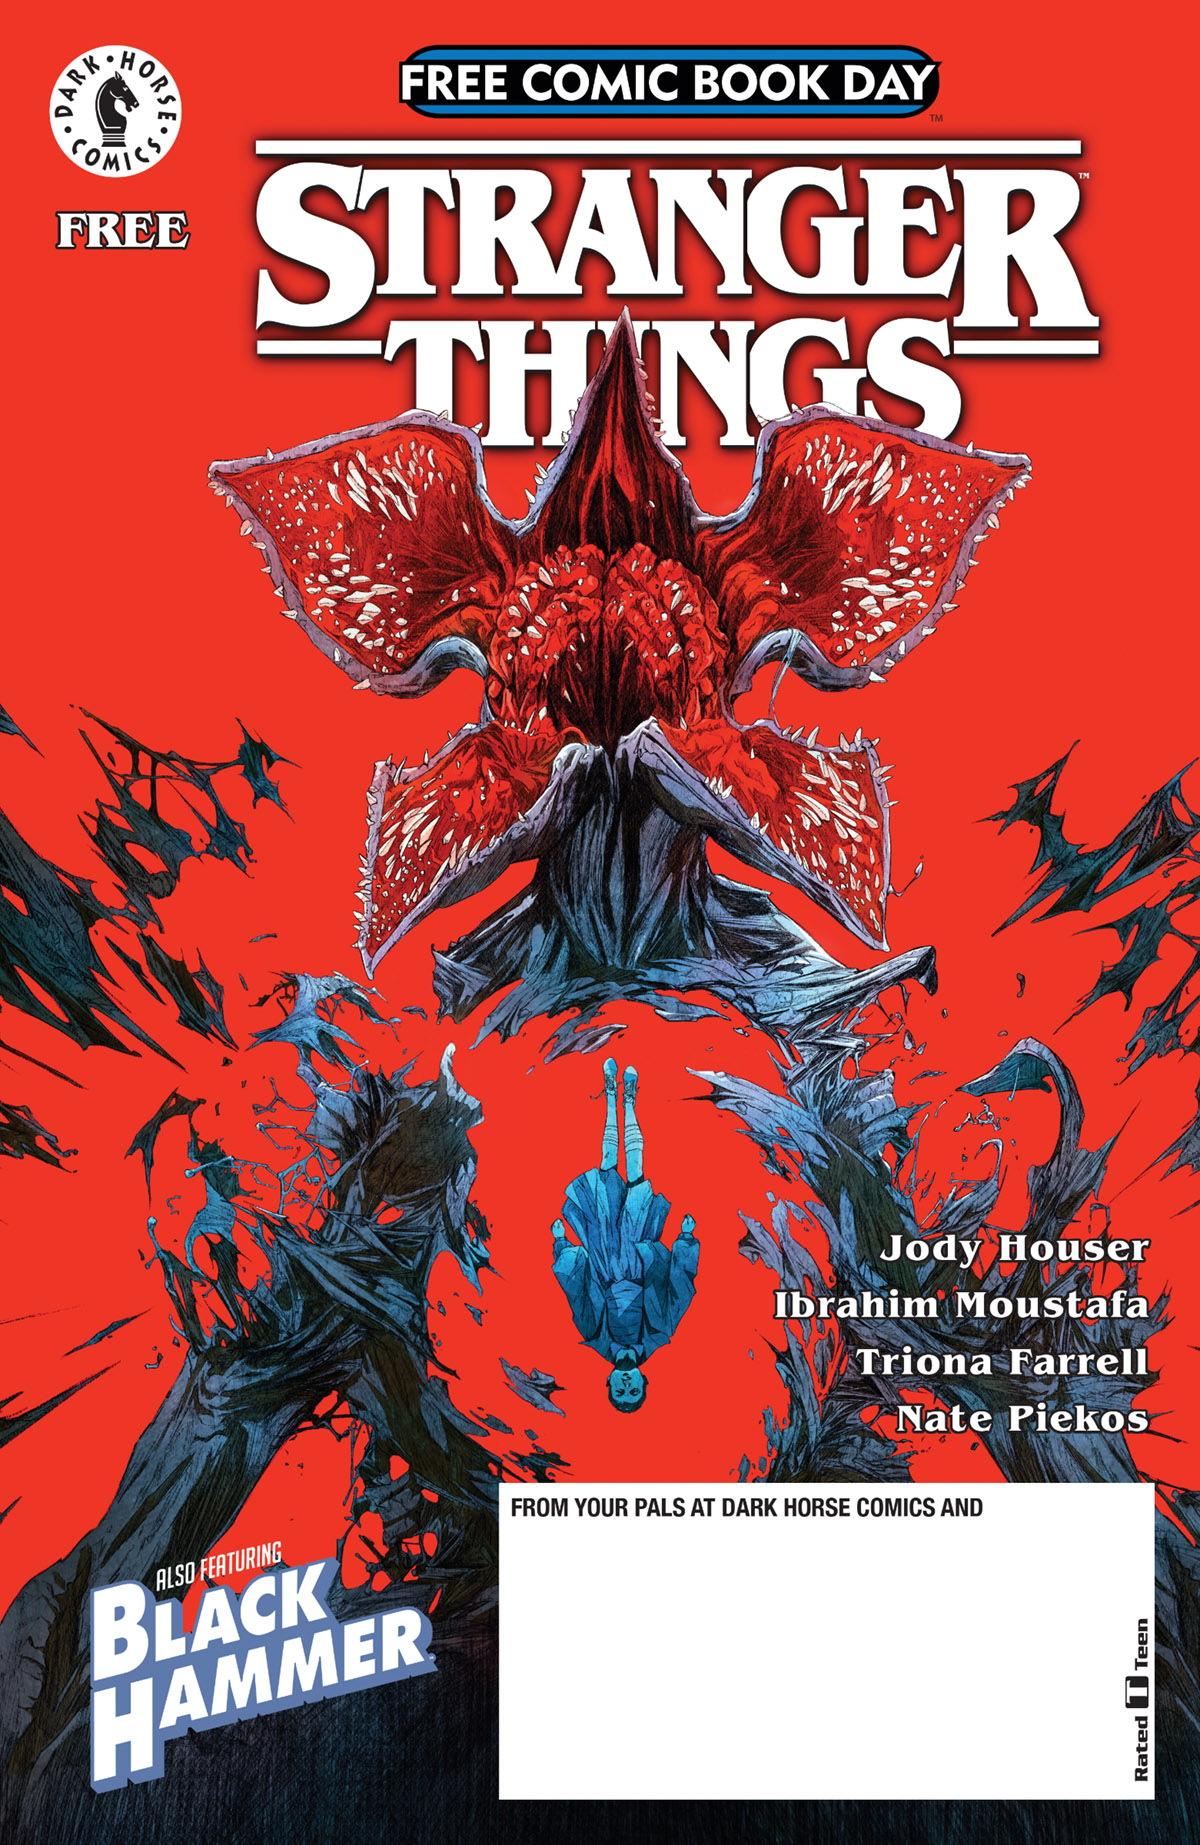 FCBD19_G_Dark Horse_Stranger Things Black Hammer_2